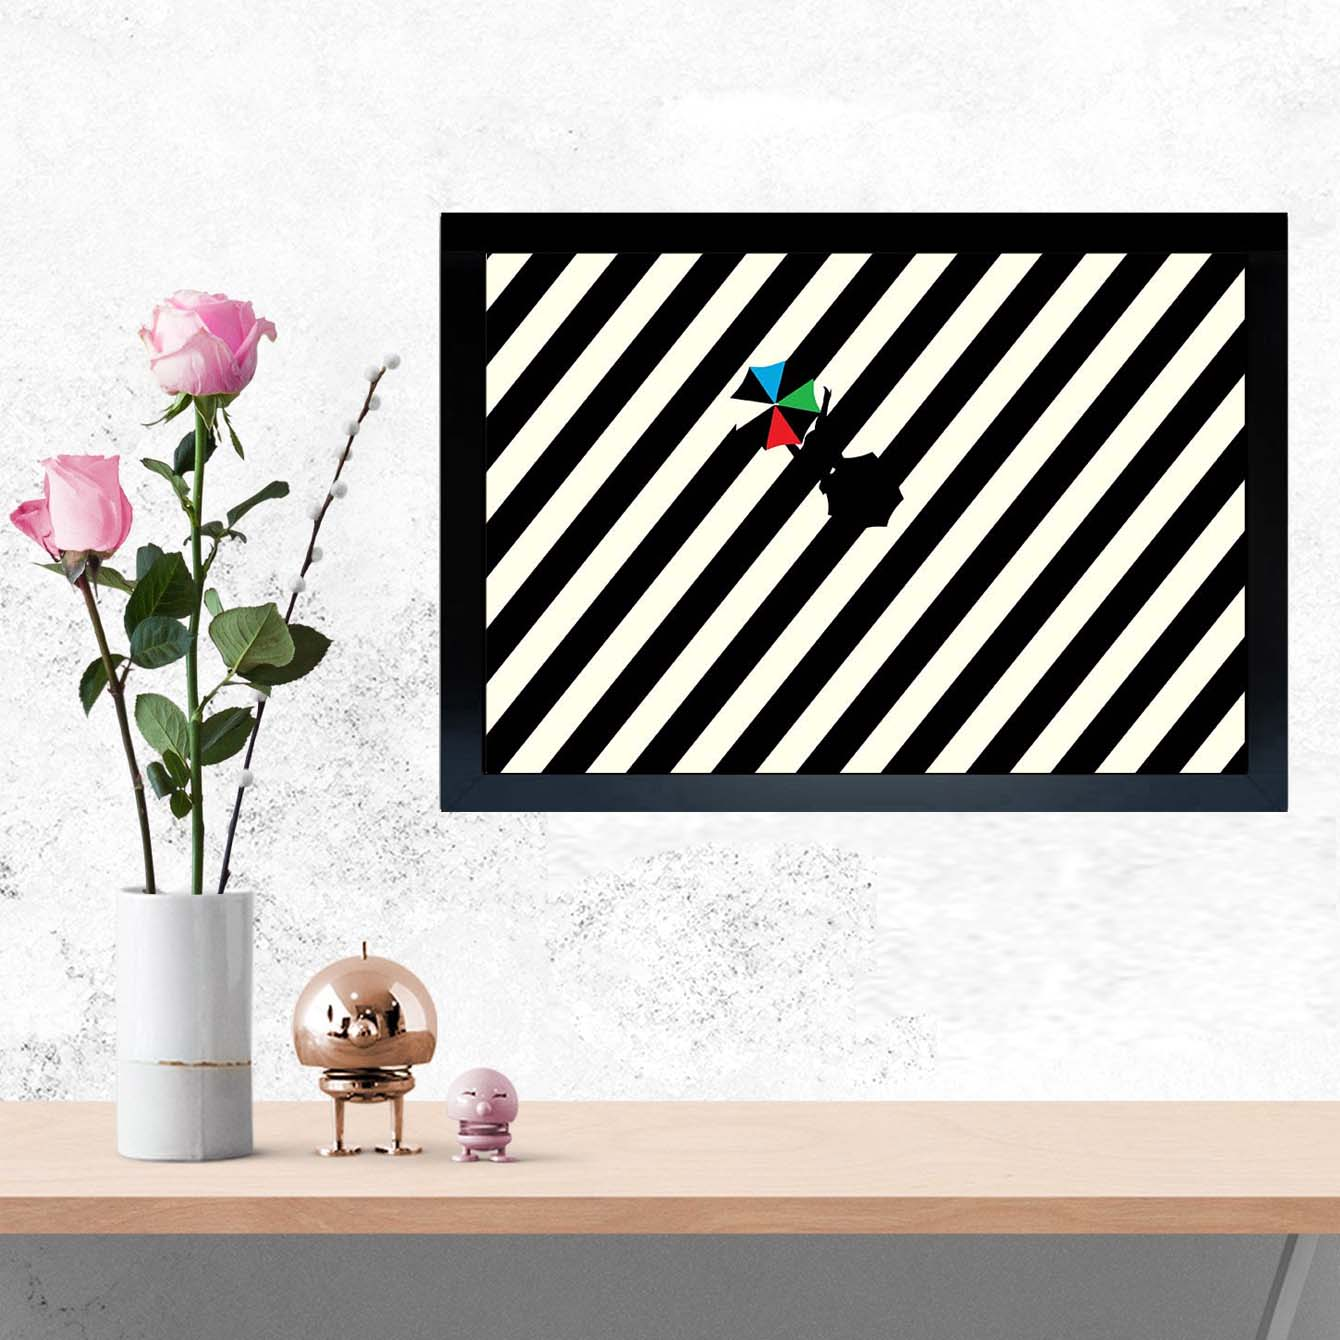 Stripe Lane Pop Art Glass Framed Posters & Artprints